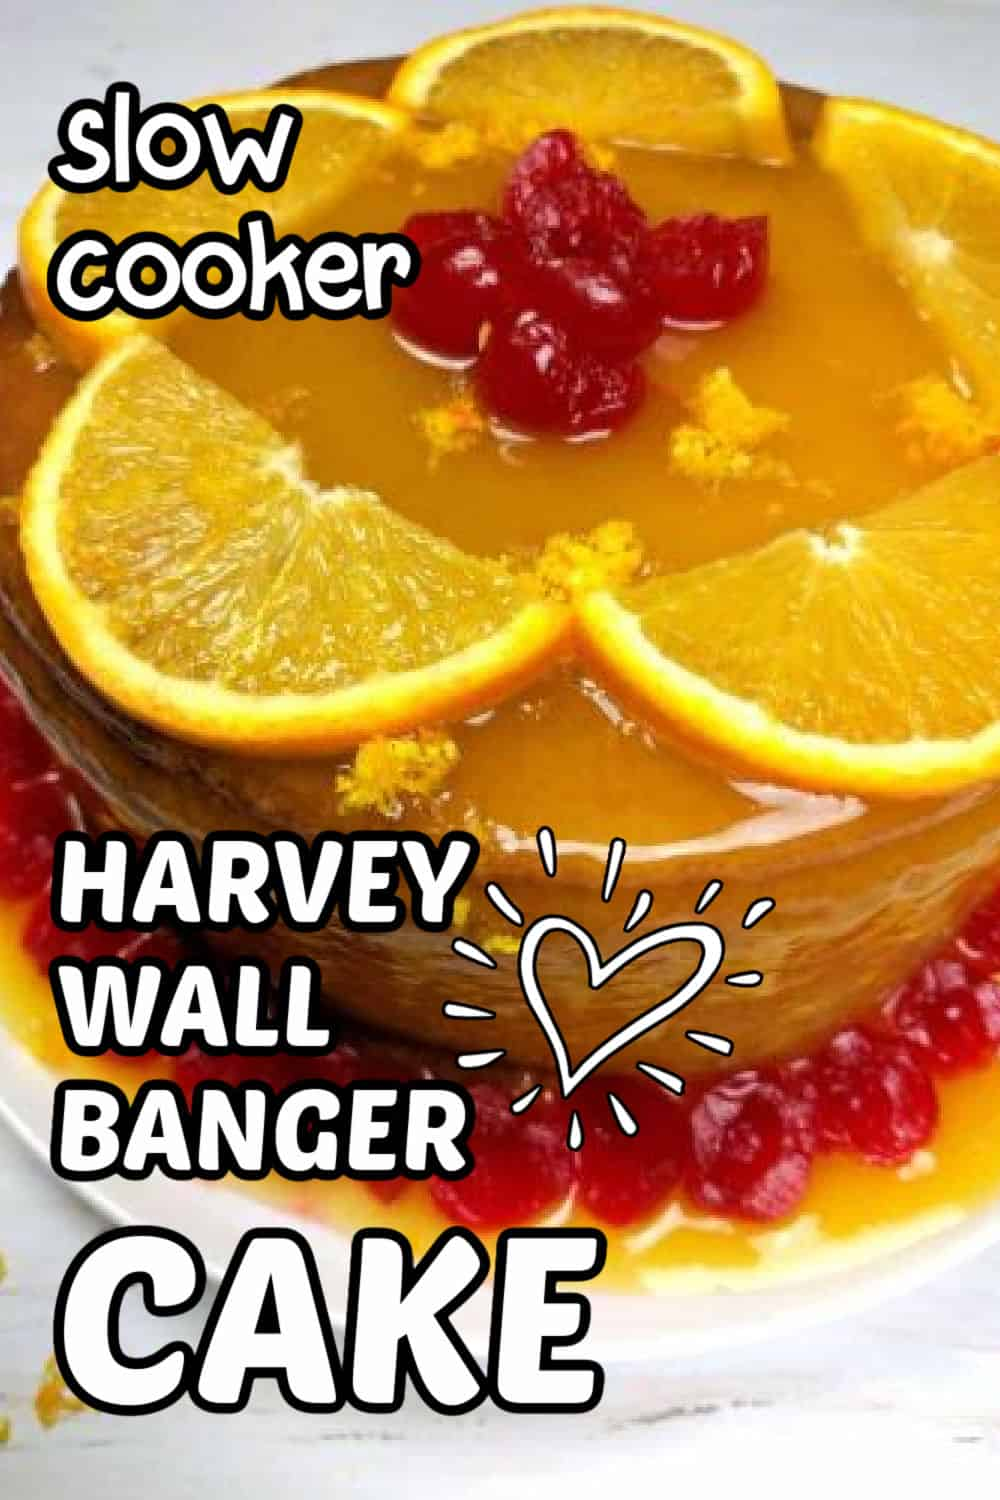 closeup of harvey wallbanger caker with text that reads slow cooker harvey wallbanger cake orange slices, glaze and marascino cherries